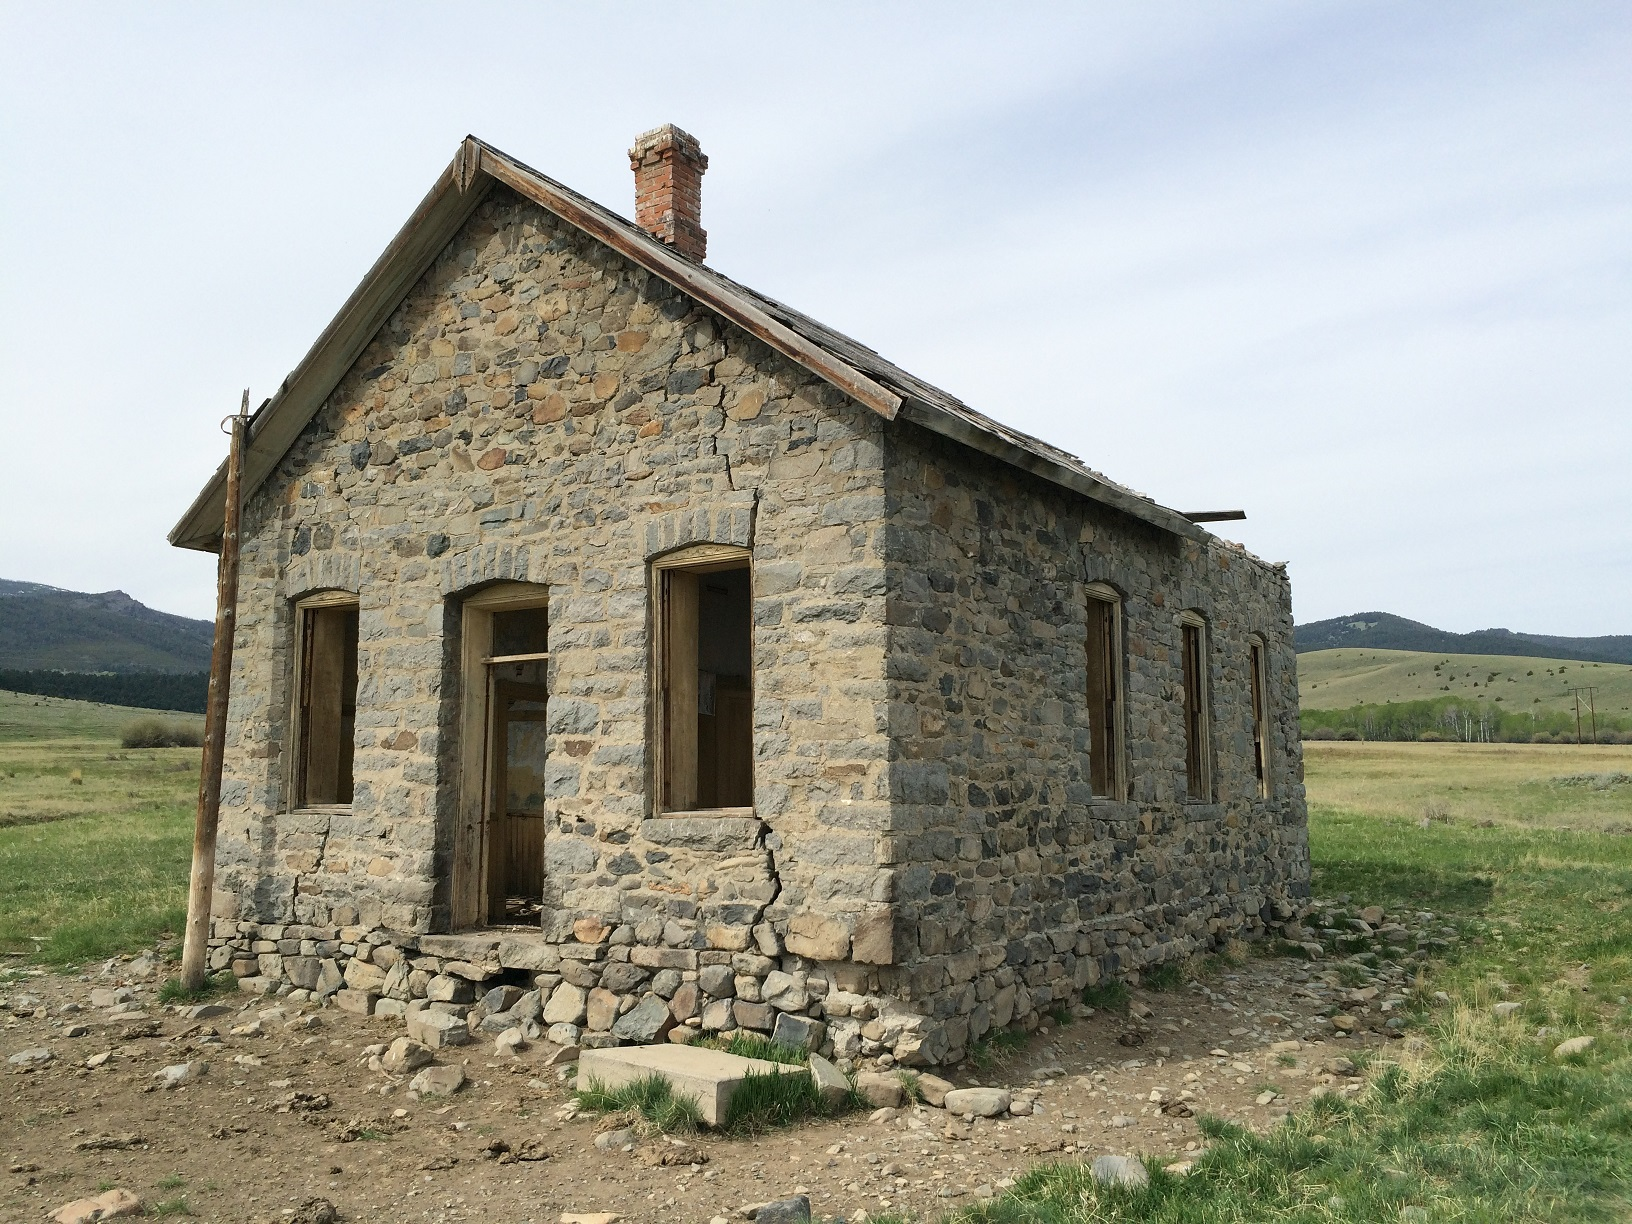 The Placer School near Winston will be used as one of our workshop case studies. It was featured in Charlotte Caldwell's book,   Visions & Voices: Montana's One-Room Schoolhouses   in 2013.